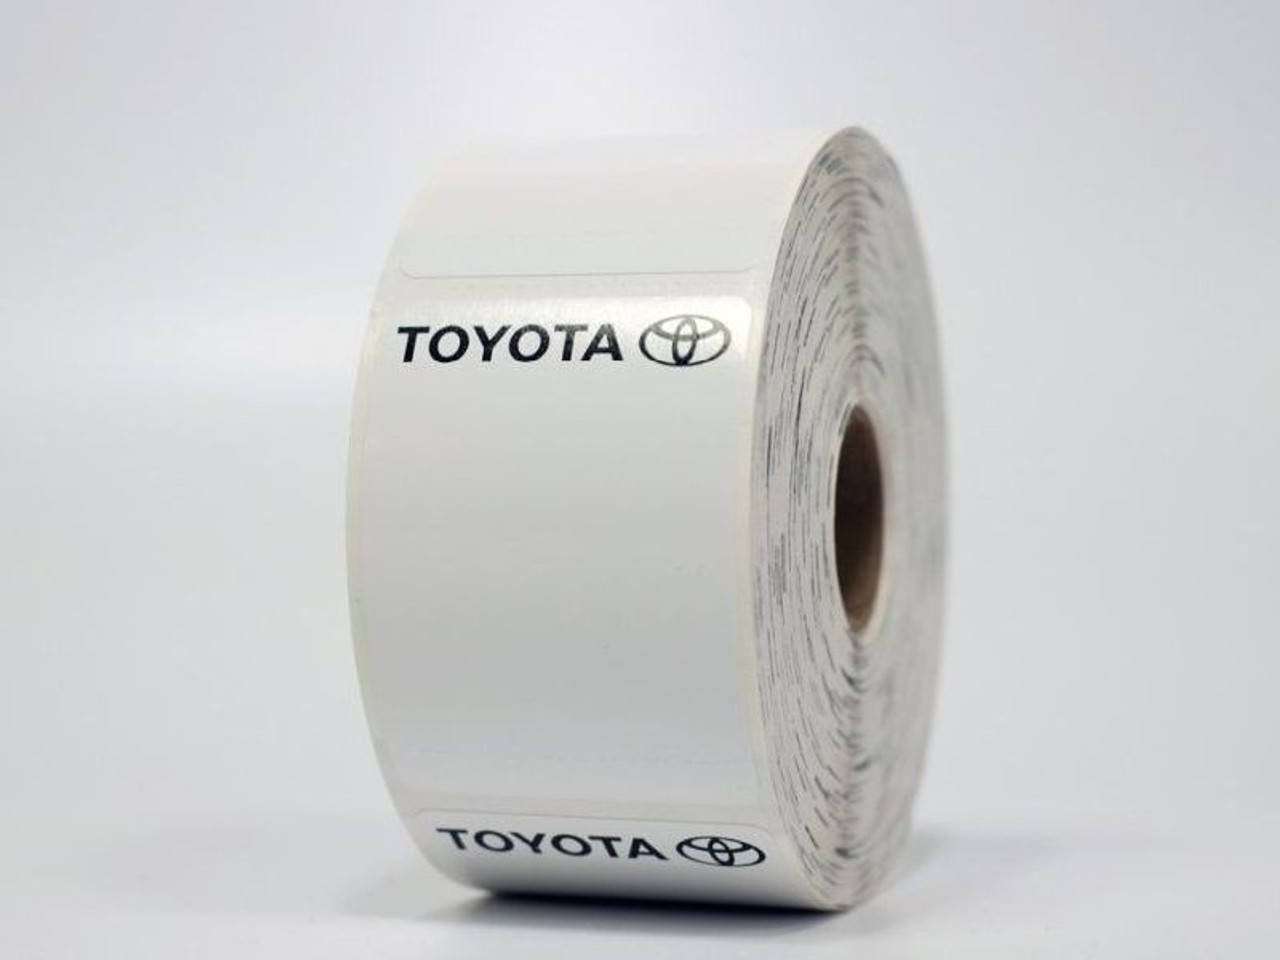 Toyota Oil Change Sticker - Blank for Printer Compatibility